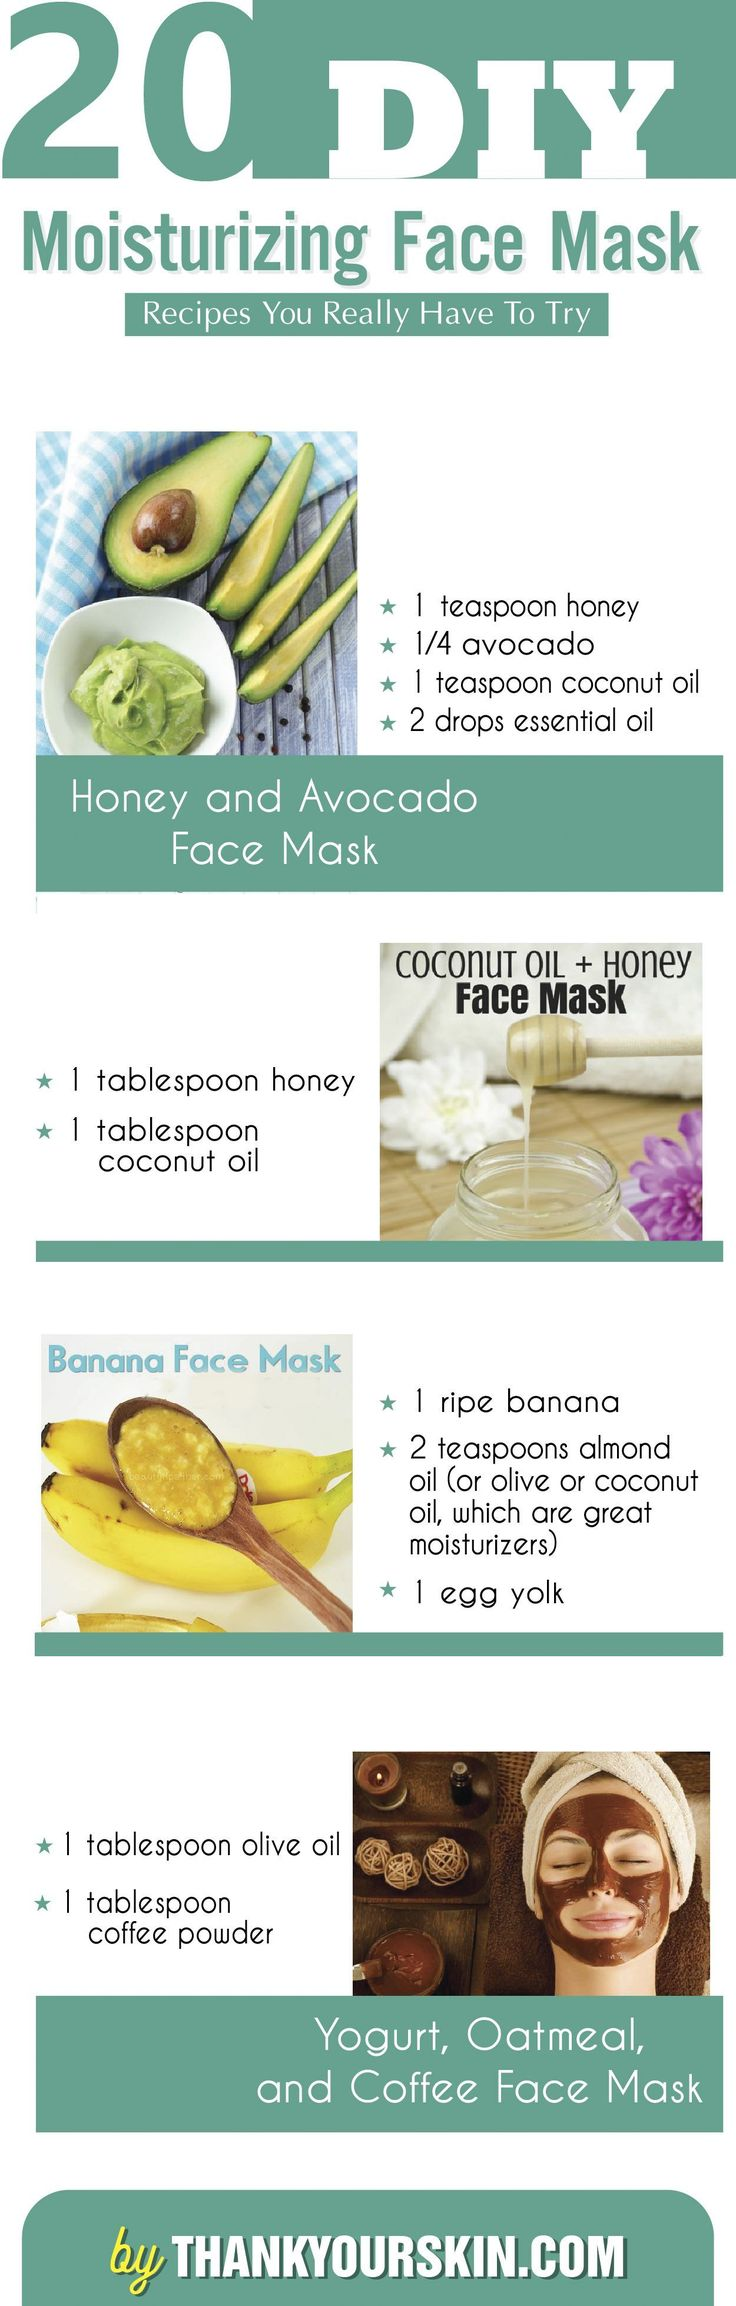 DIY moisturizing face mask - Easy DIY face mask recipes at home. Get a glowing and clear skin today!  https://www.thankyourskin.com/diy-moisturizing-face-mask/